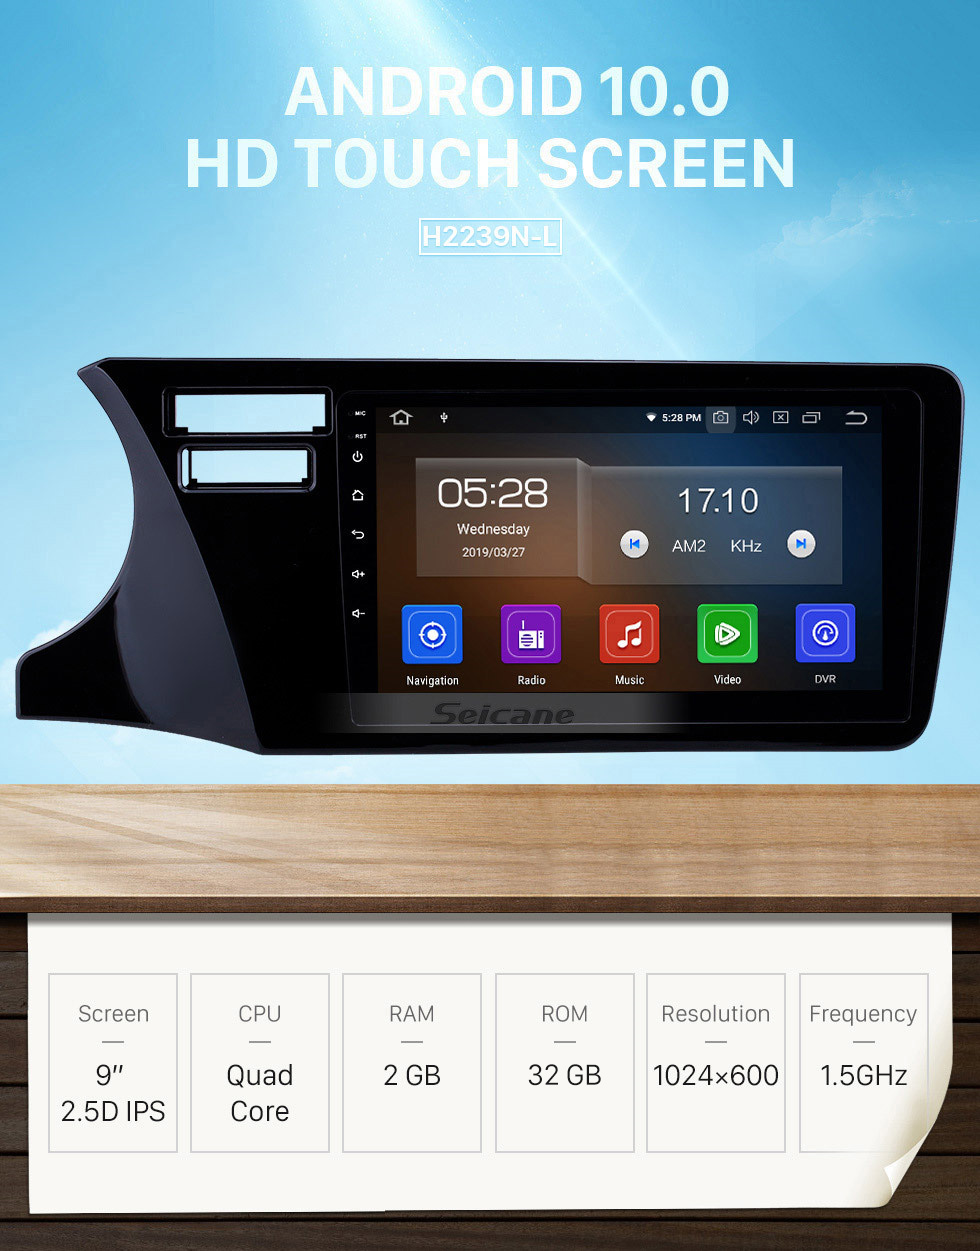 Seicane Android 10.0 9 inch GPS Navigation Radio for 2014-2017 Honda City LHD with HD Touchscreen Carplay Bluetooth WIFI USB AUX support Mirror Link OBD2 SWC